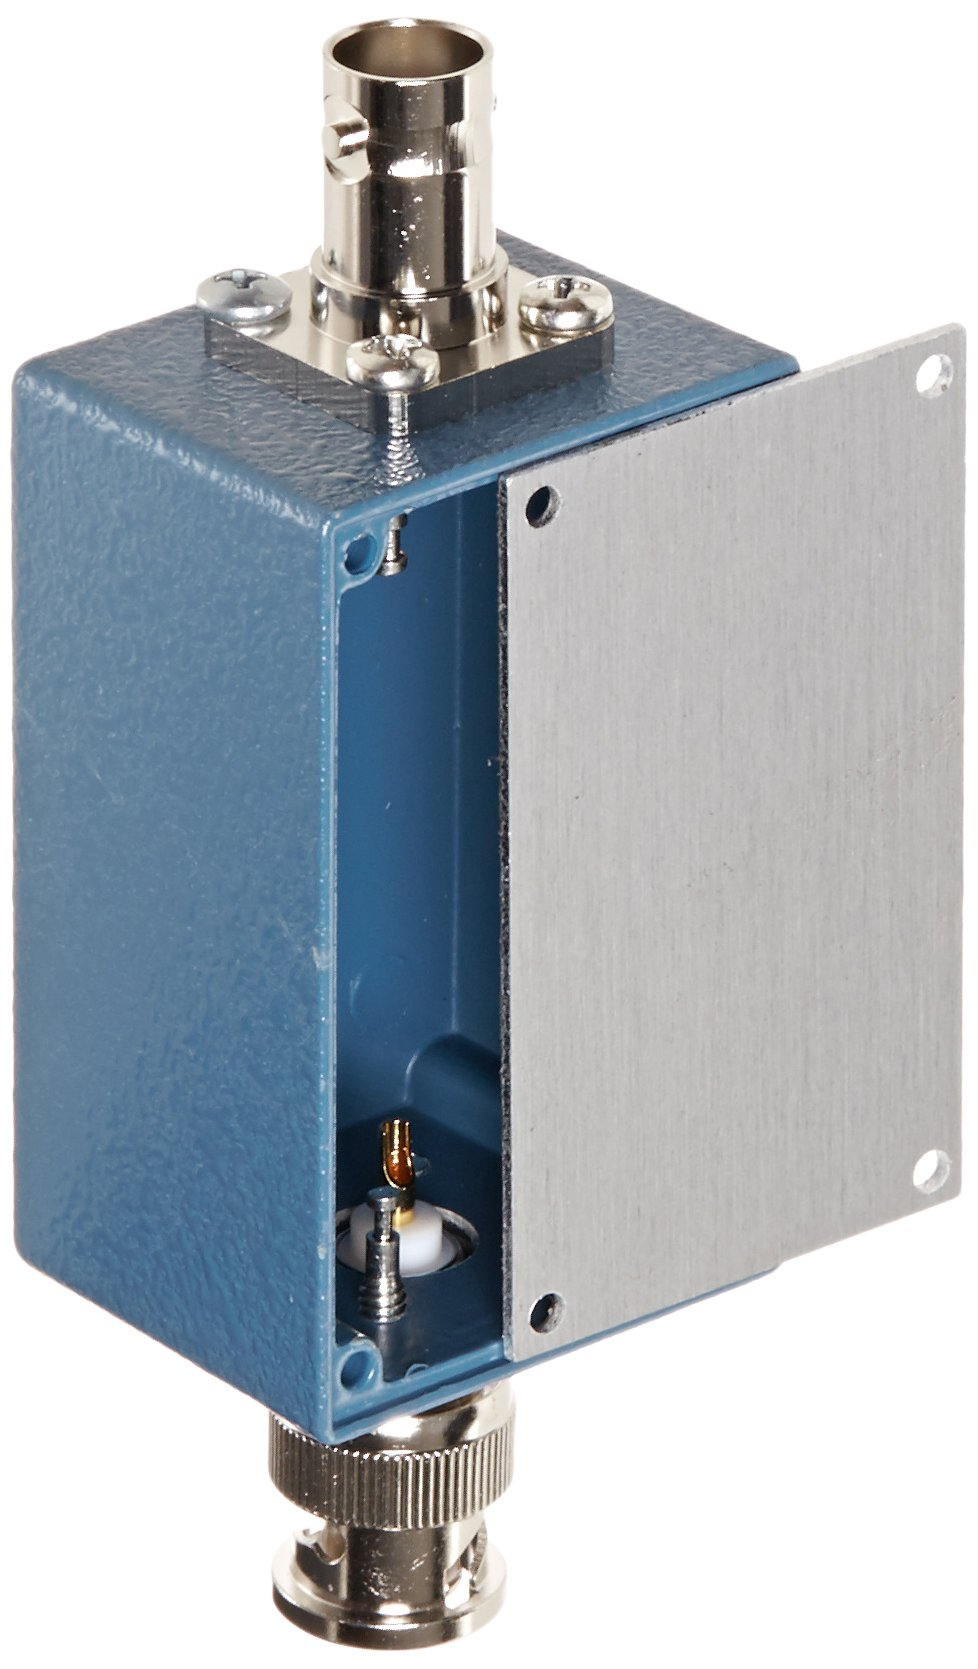 Pomona 3231 Aluminum Shielded Box with Cover, Size B, Blue Baked Enamel Finish, BNC Male to Female Connector, 2.25'' L x 1.38'' W x 1.13'' D (Pack of 2)